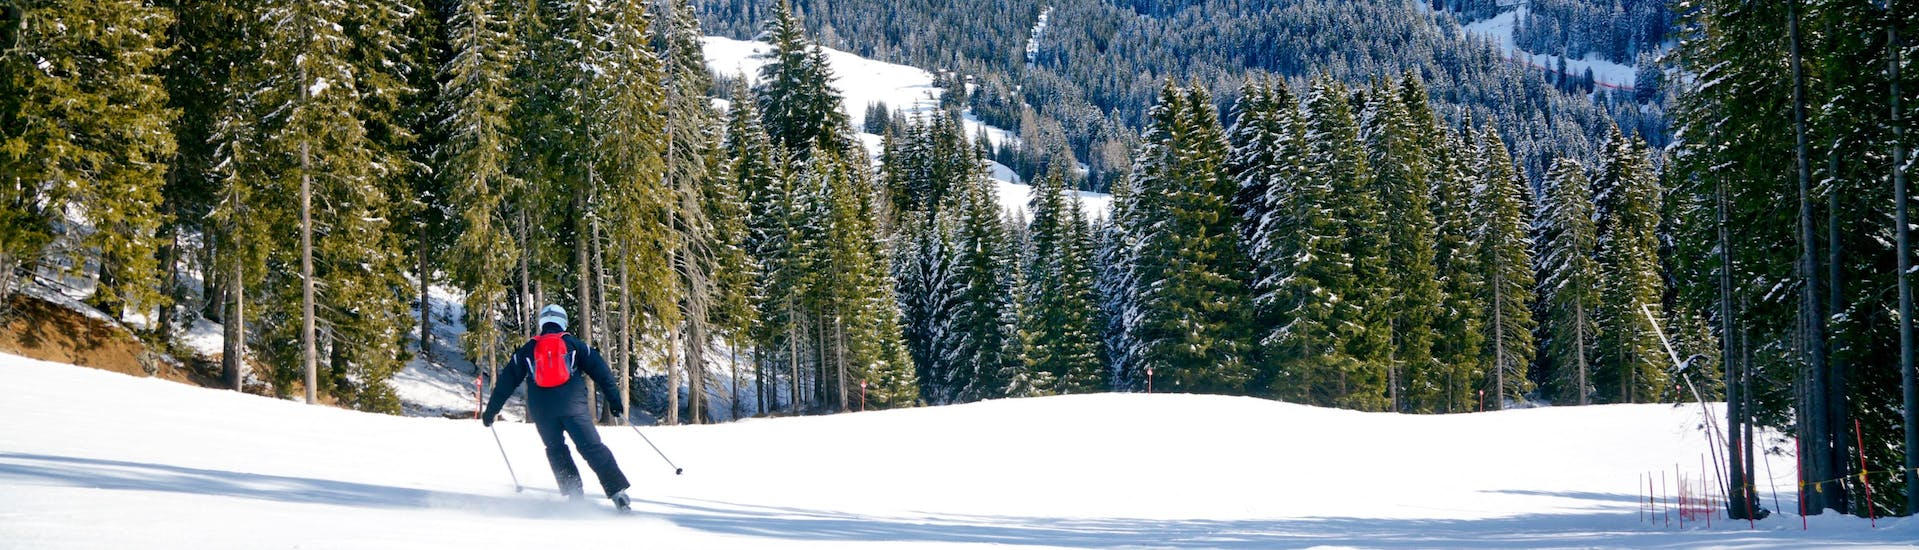 A skier can be seen skiing down a deserted ski slope in Val di Fassa, a popular place to book ski lessons with one of the local ski schools.